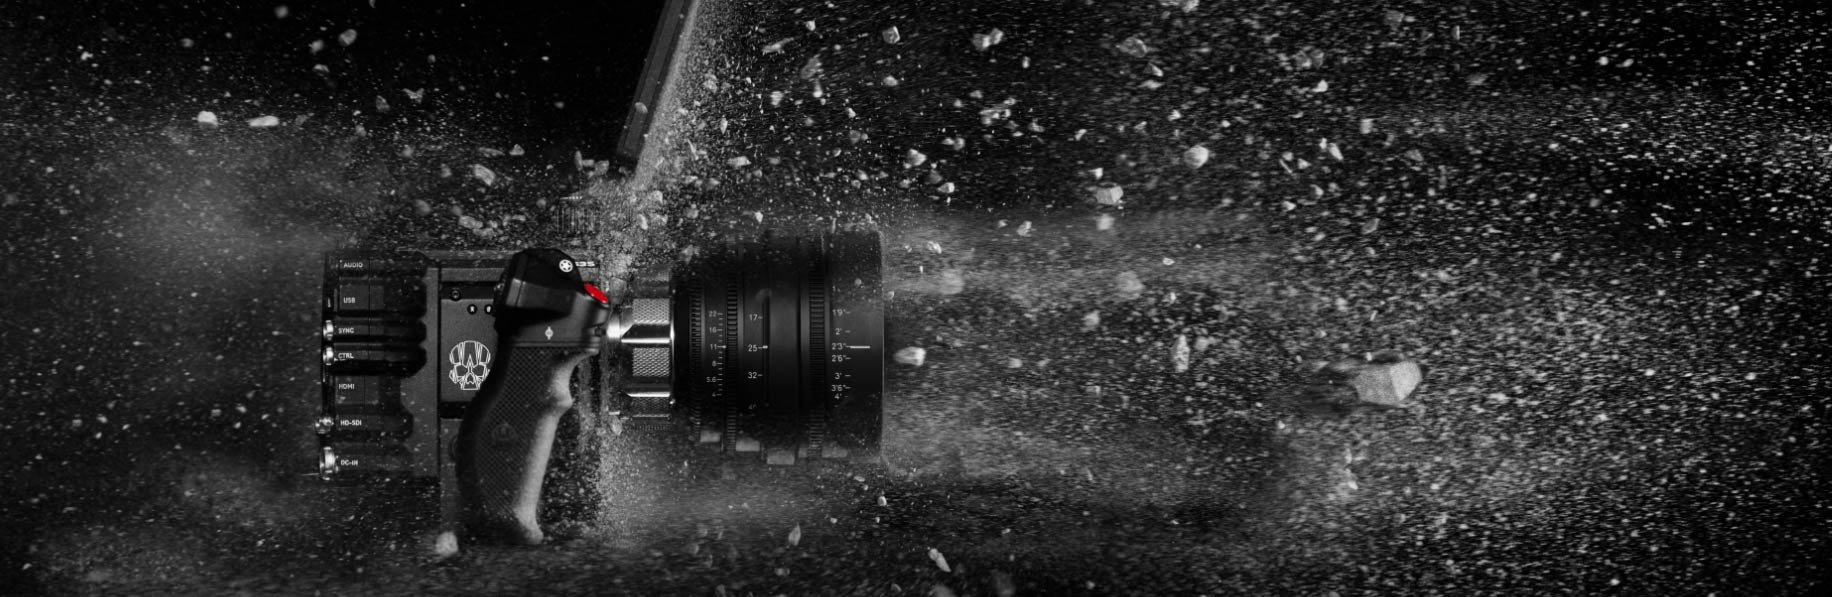 Red Digital Cinema's advertising of a camera and lens being blasted by dirt to show how reliable their product is in all conditions.